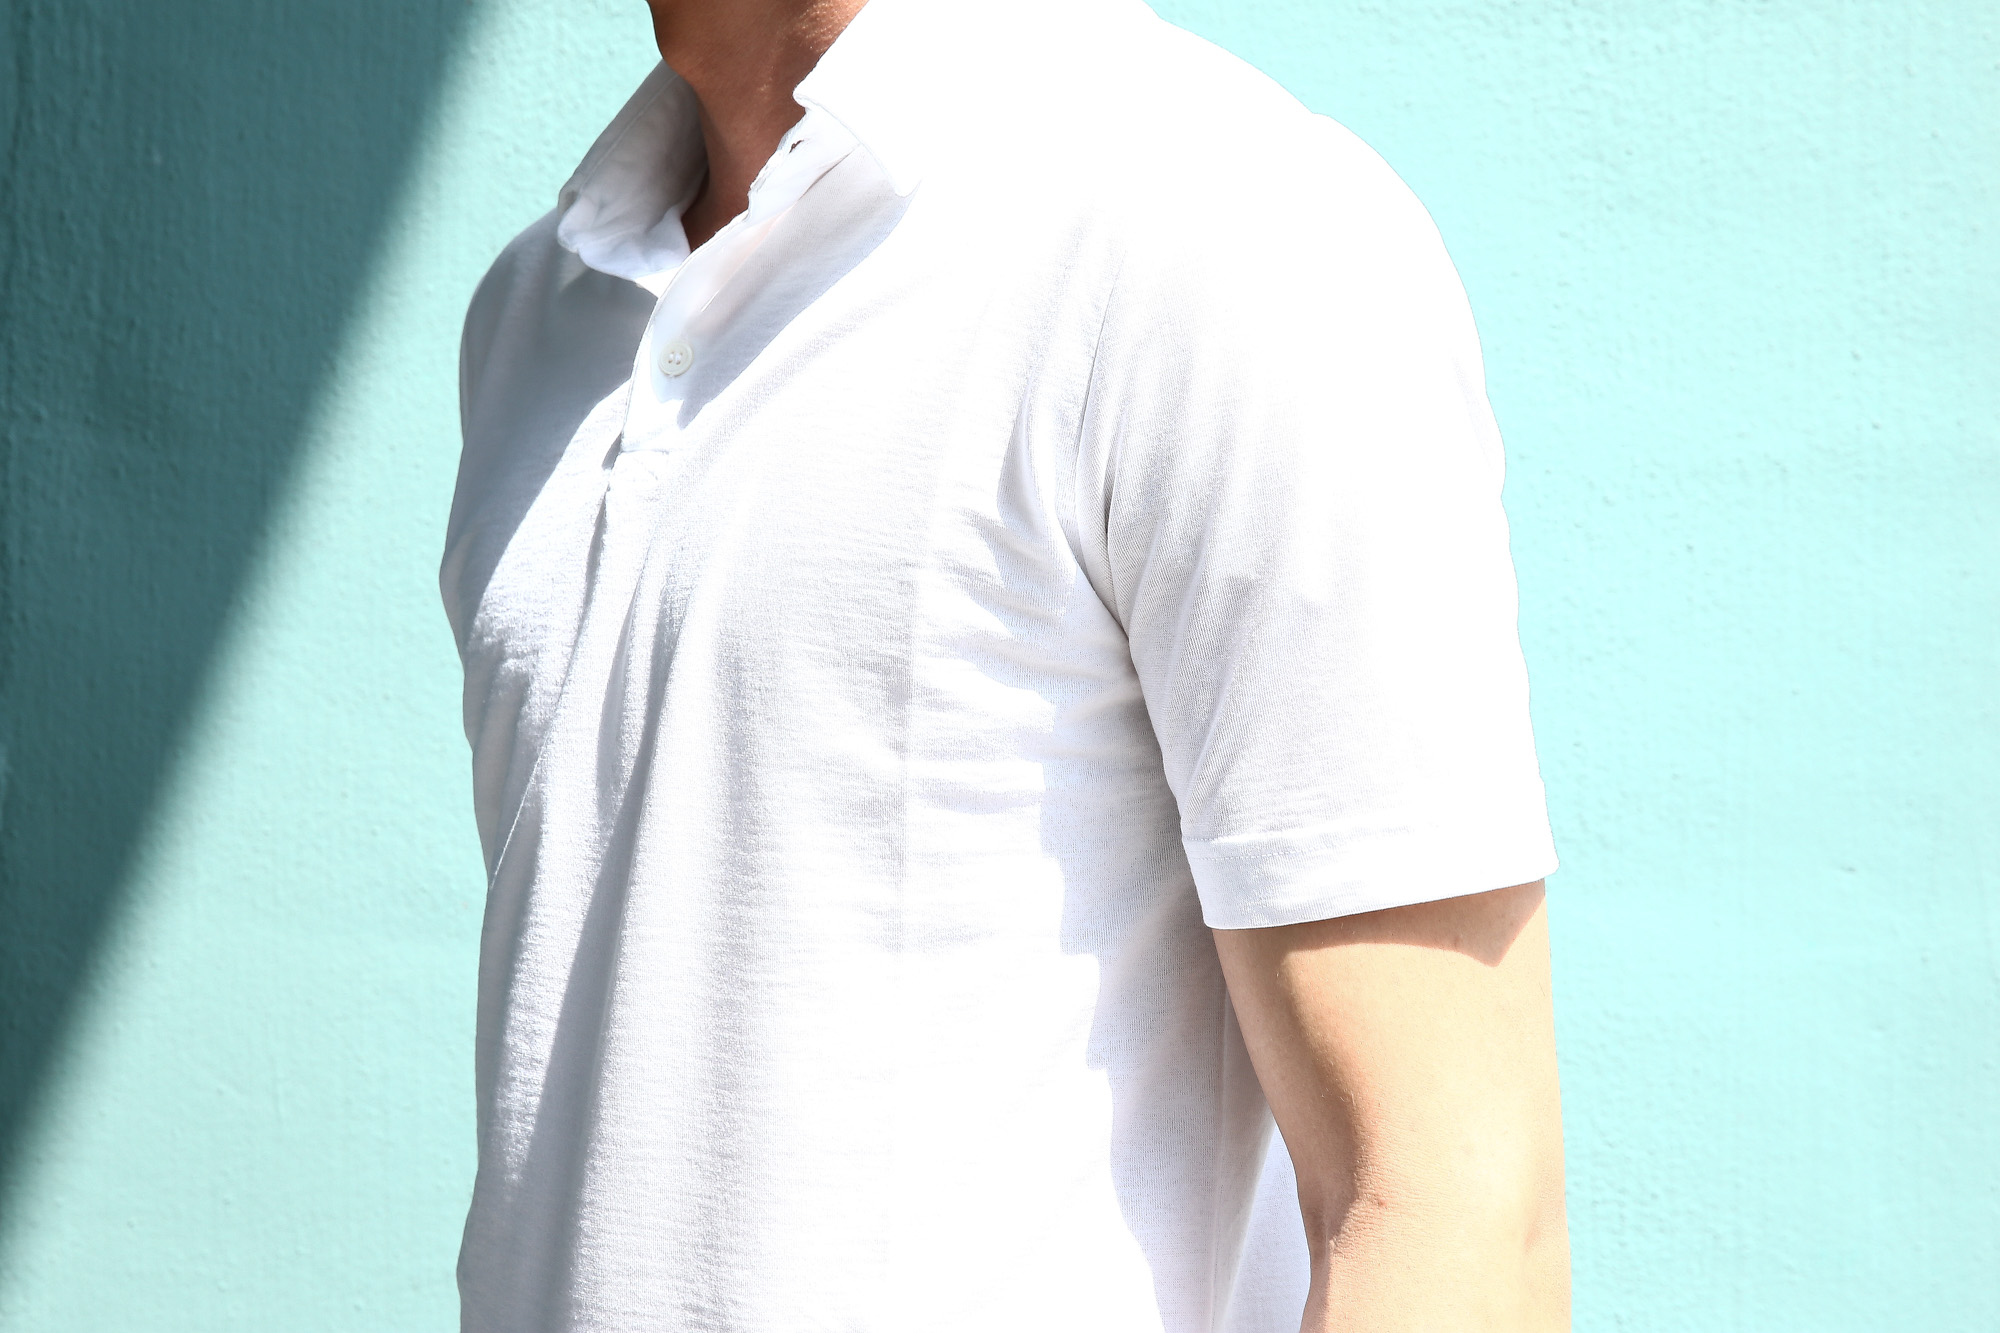 ZANONE (ザノーネ) Polo Shirt ice cotton アイスコットン ポロシャツ WHITE (ホワイト・Z0001) made in italy (イタリア製) 2018 春夏新作 愛知 名古屋 ZODIAC ゾディアック ポロ ニットポロ